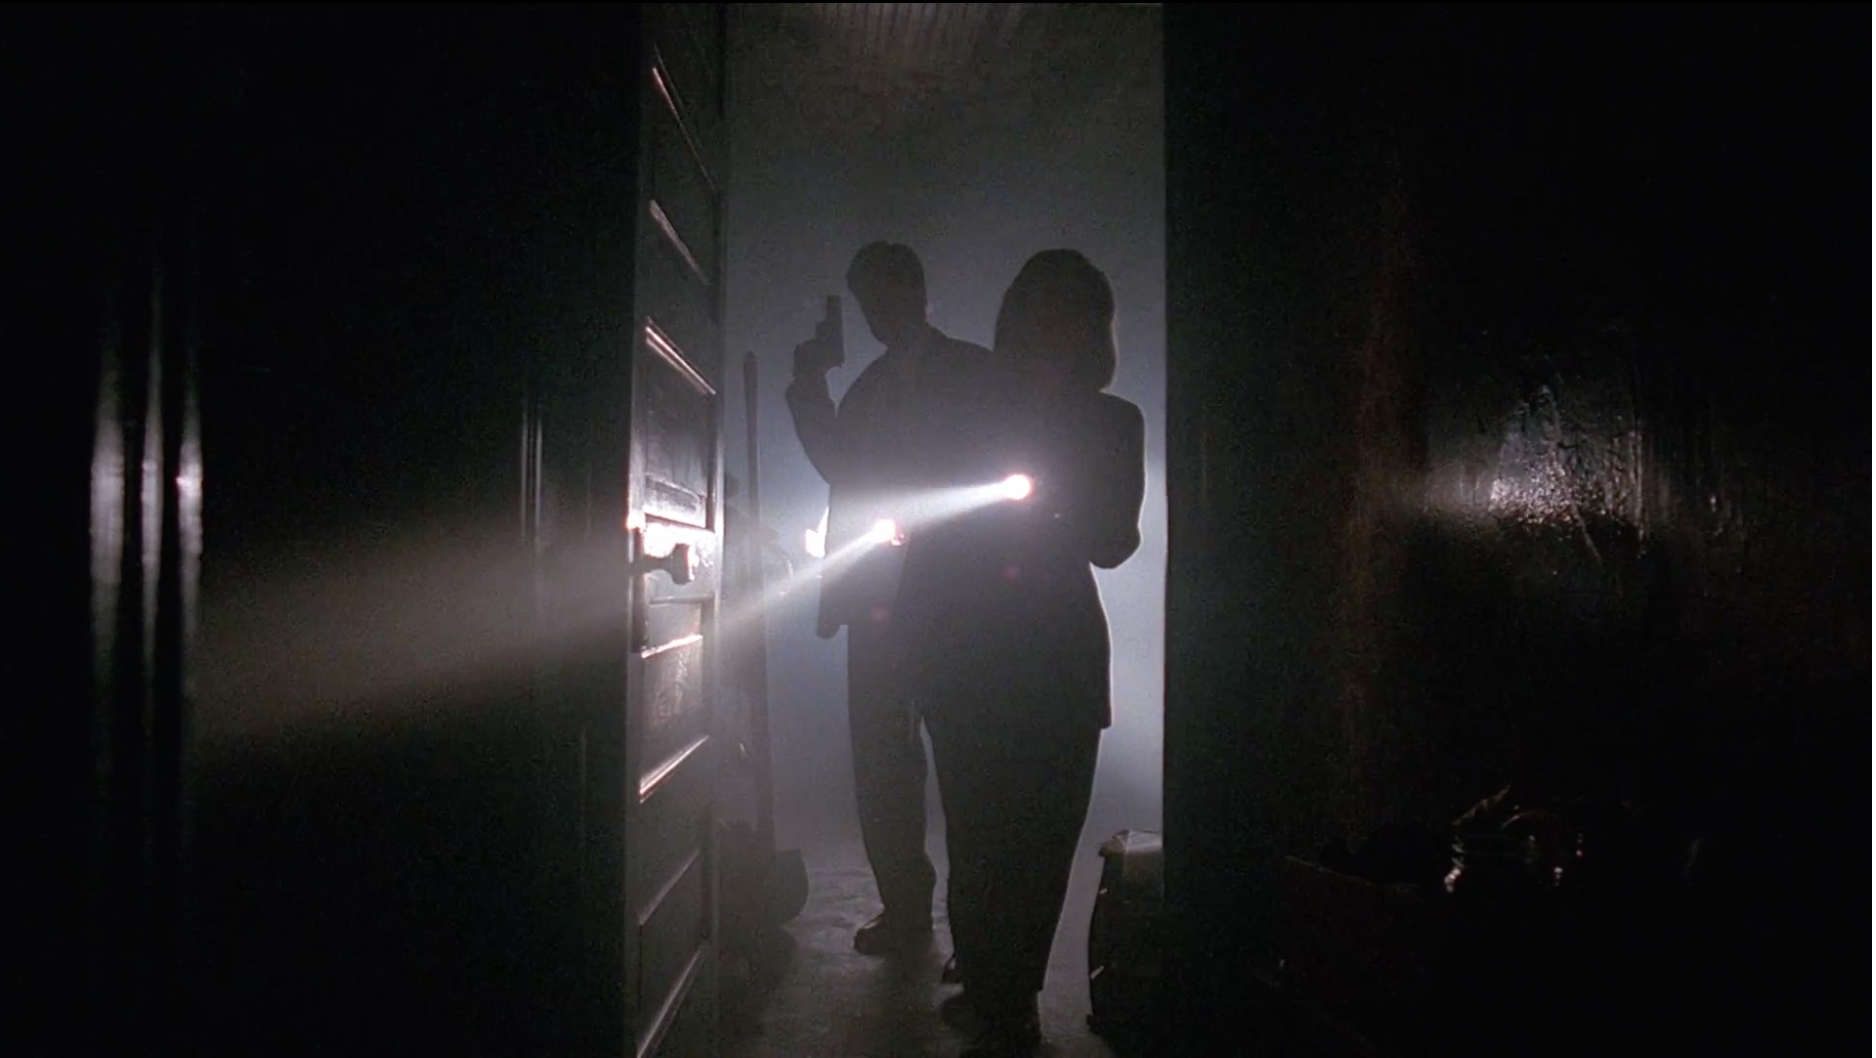 X-Files re-opened: Behind the Scenes Documentary